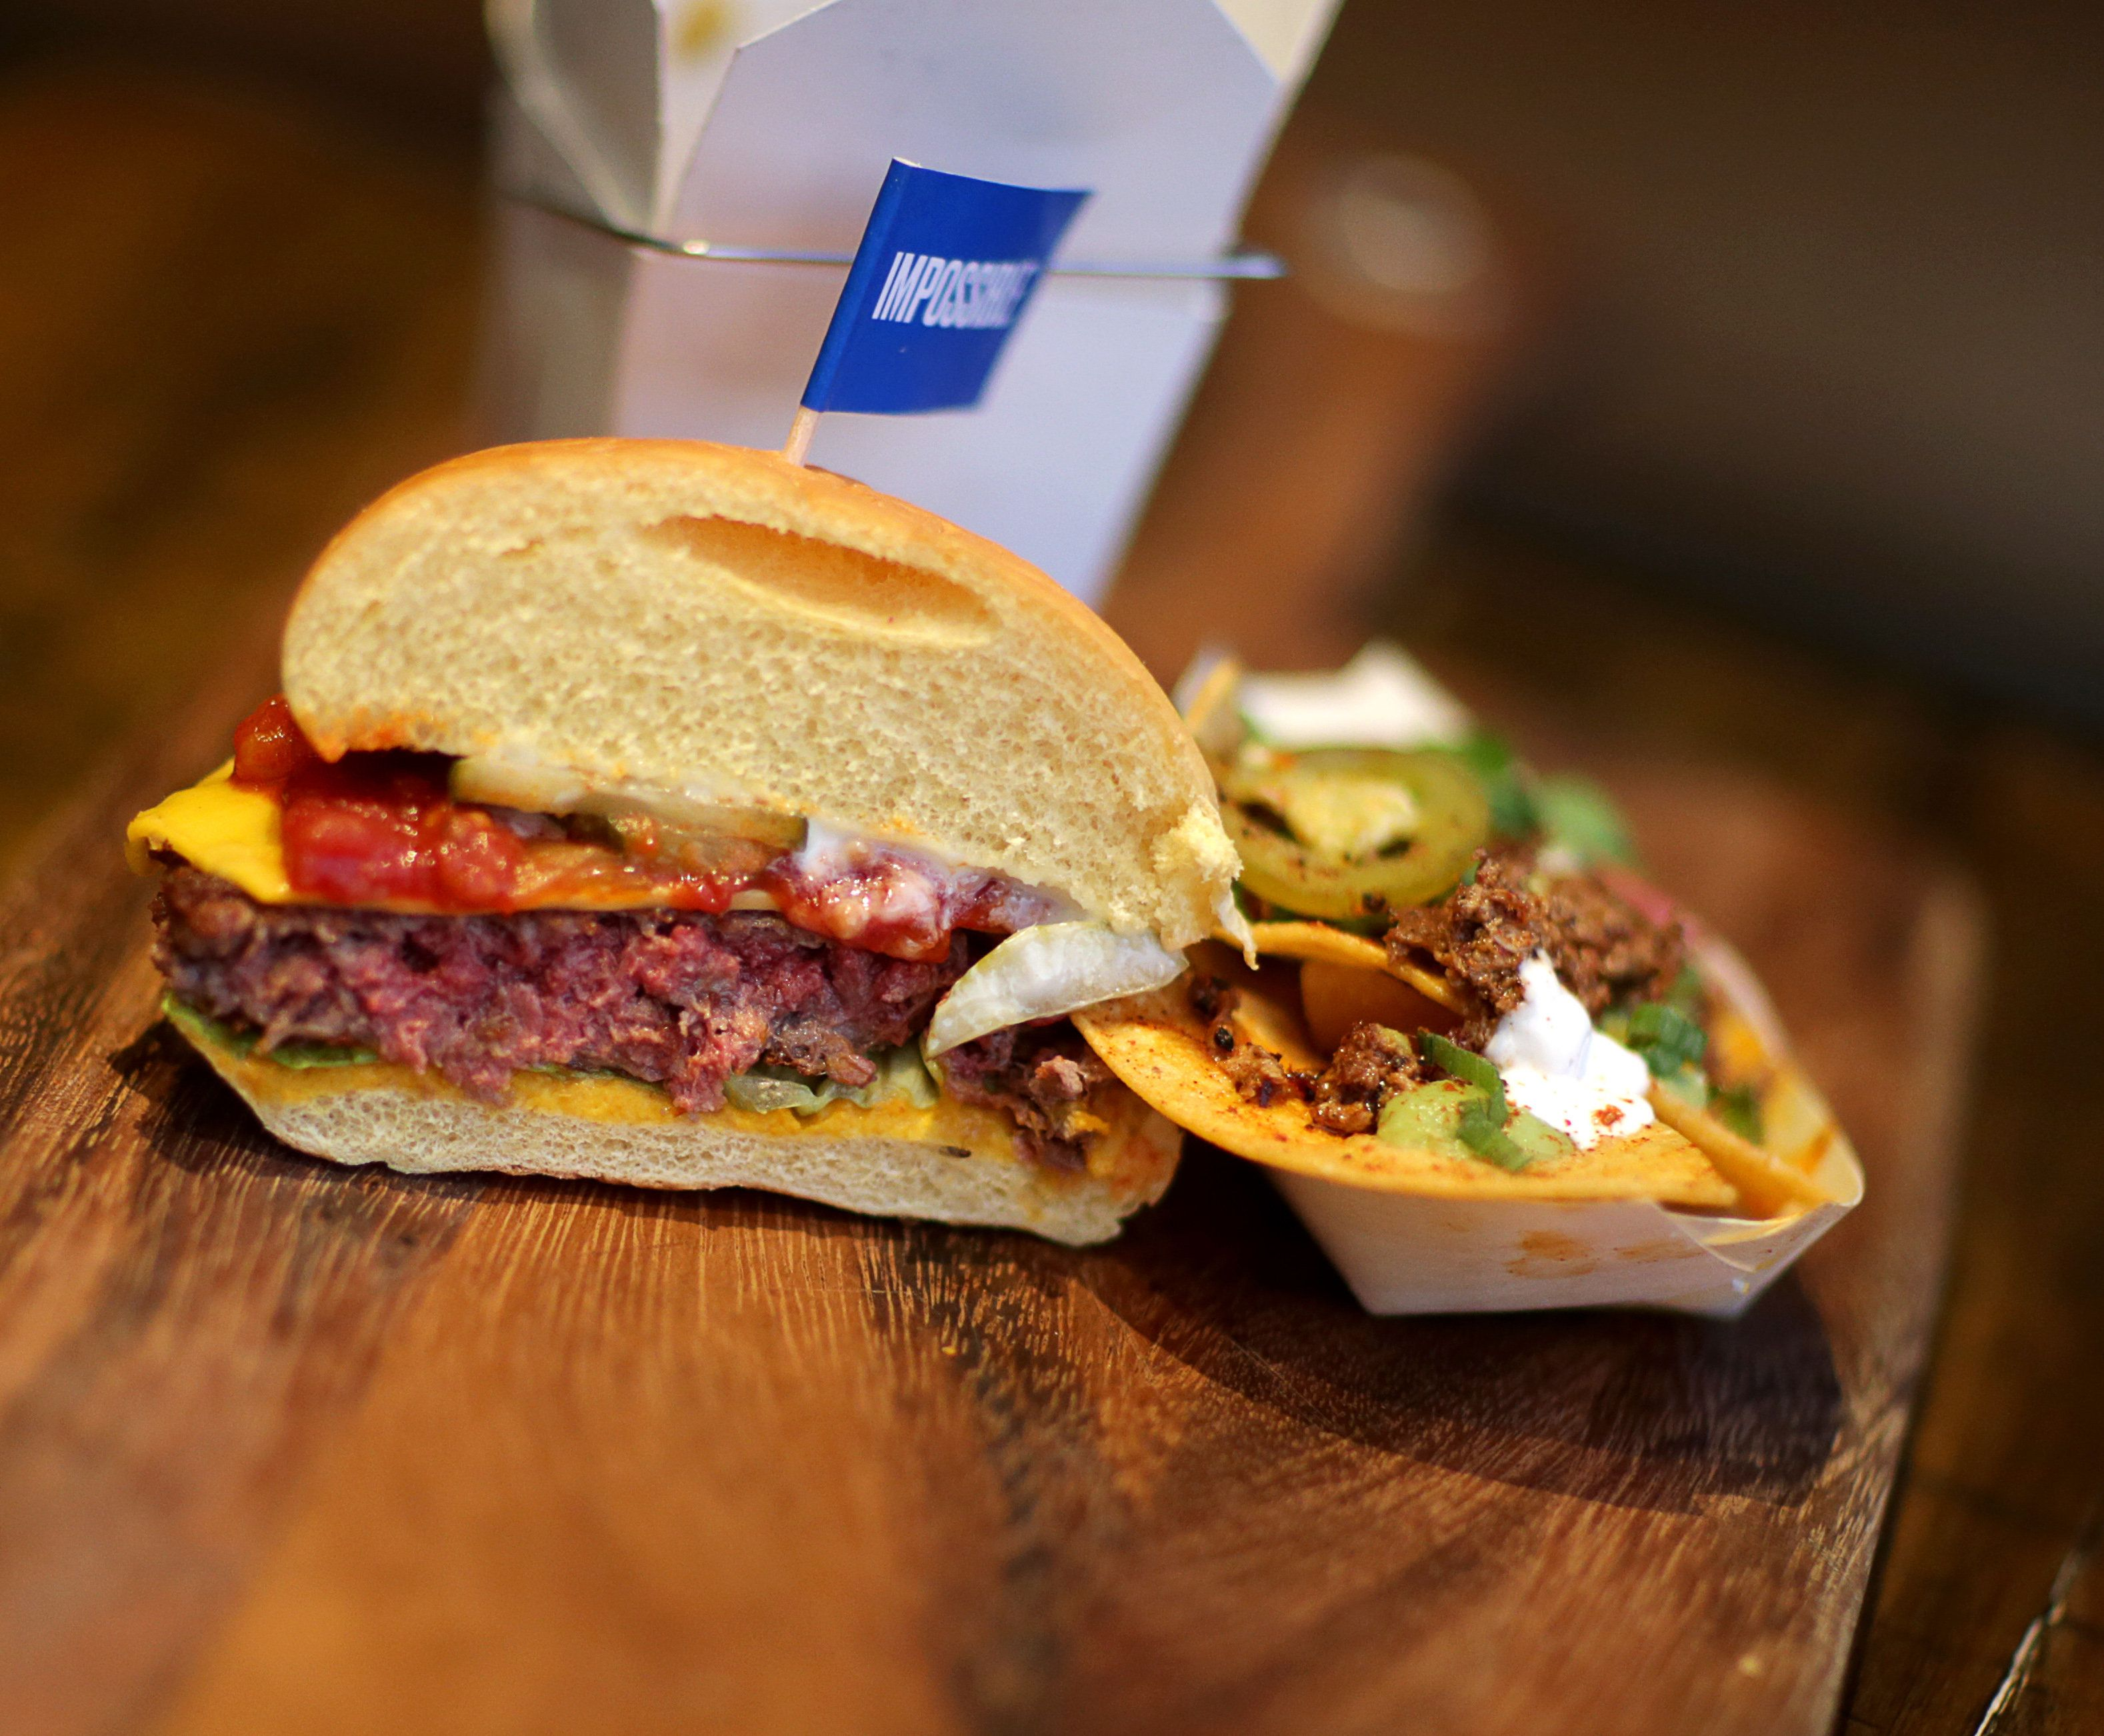 The meatless Impossible Burger, pictured at Little Donkey in Cambridge, Massachusetts.